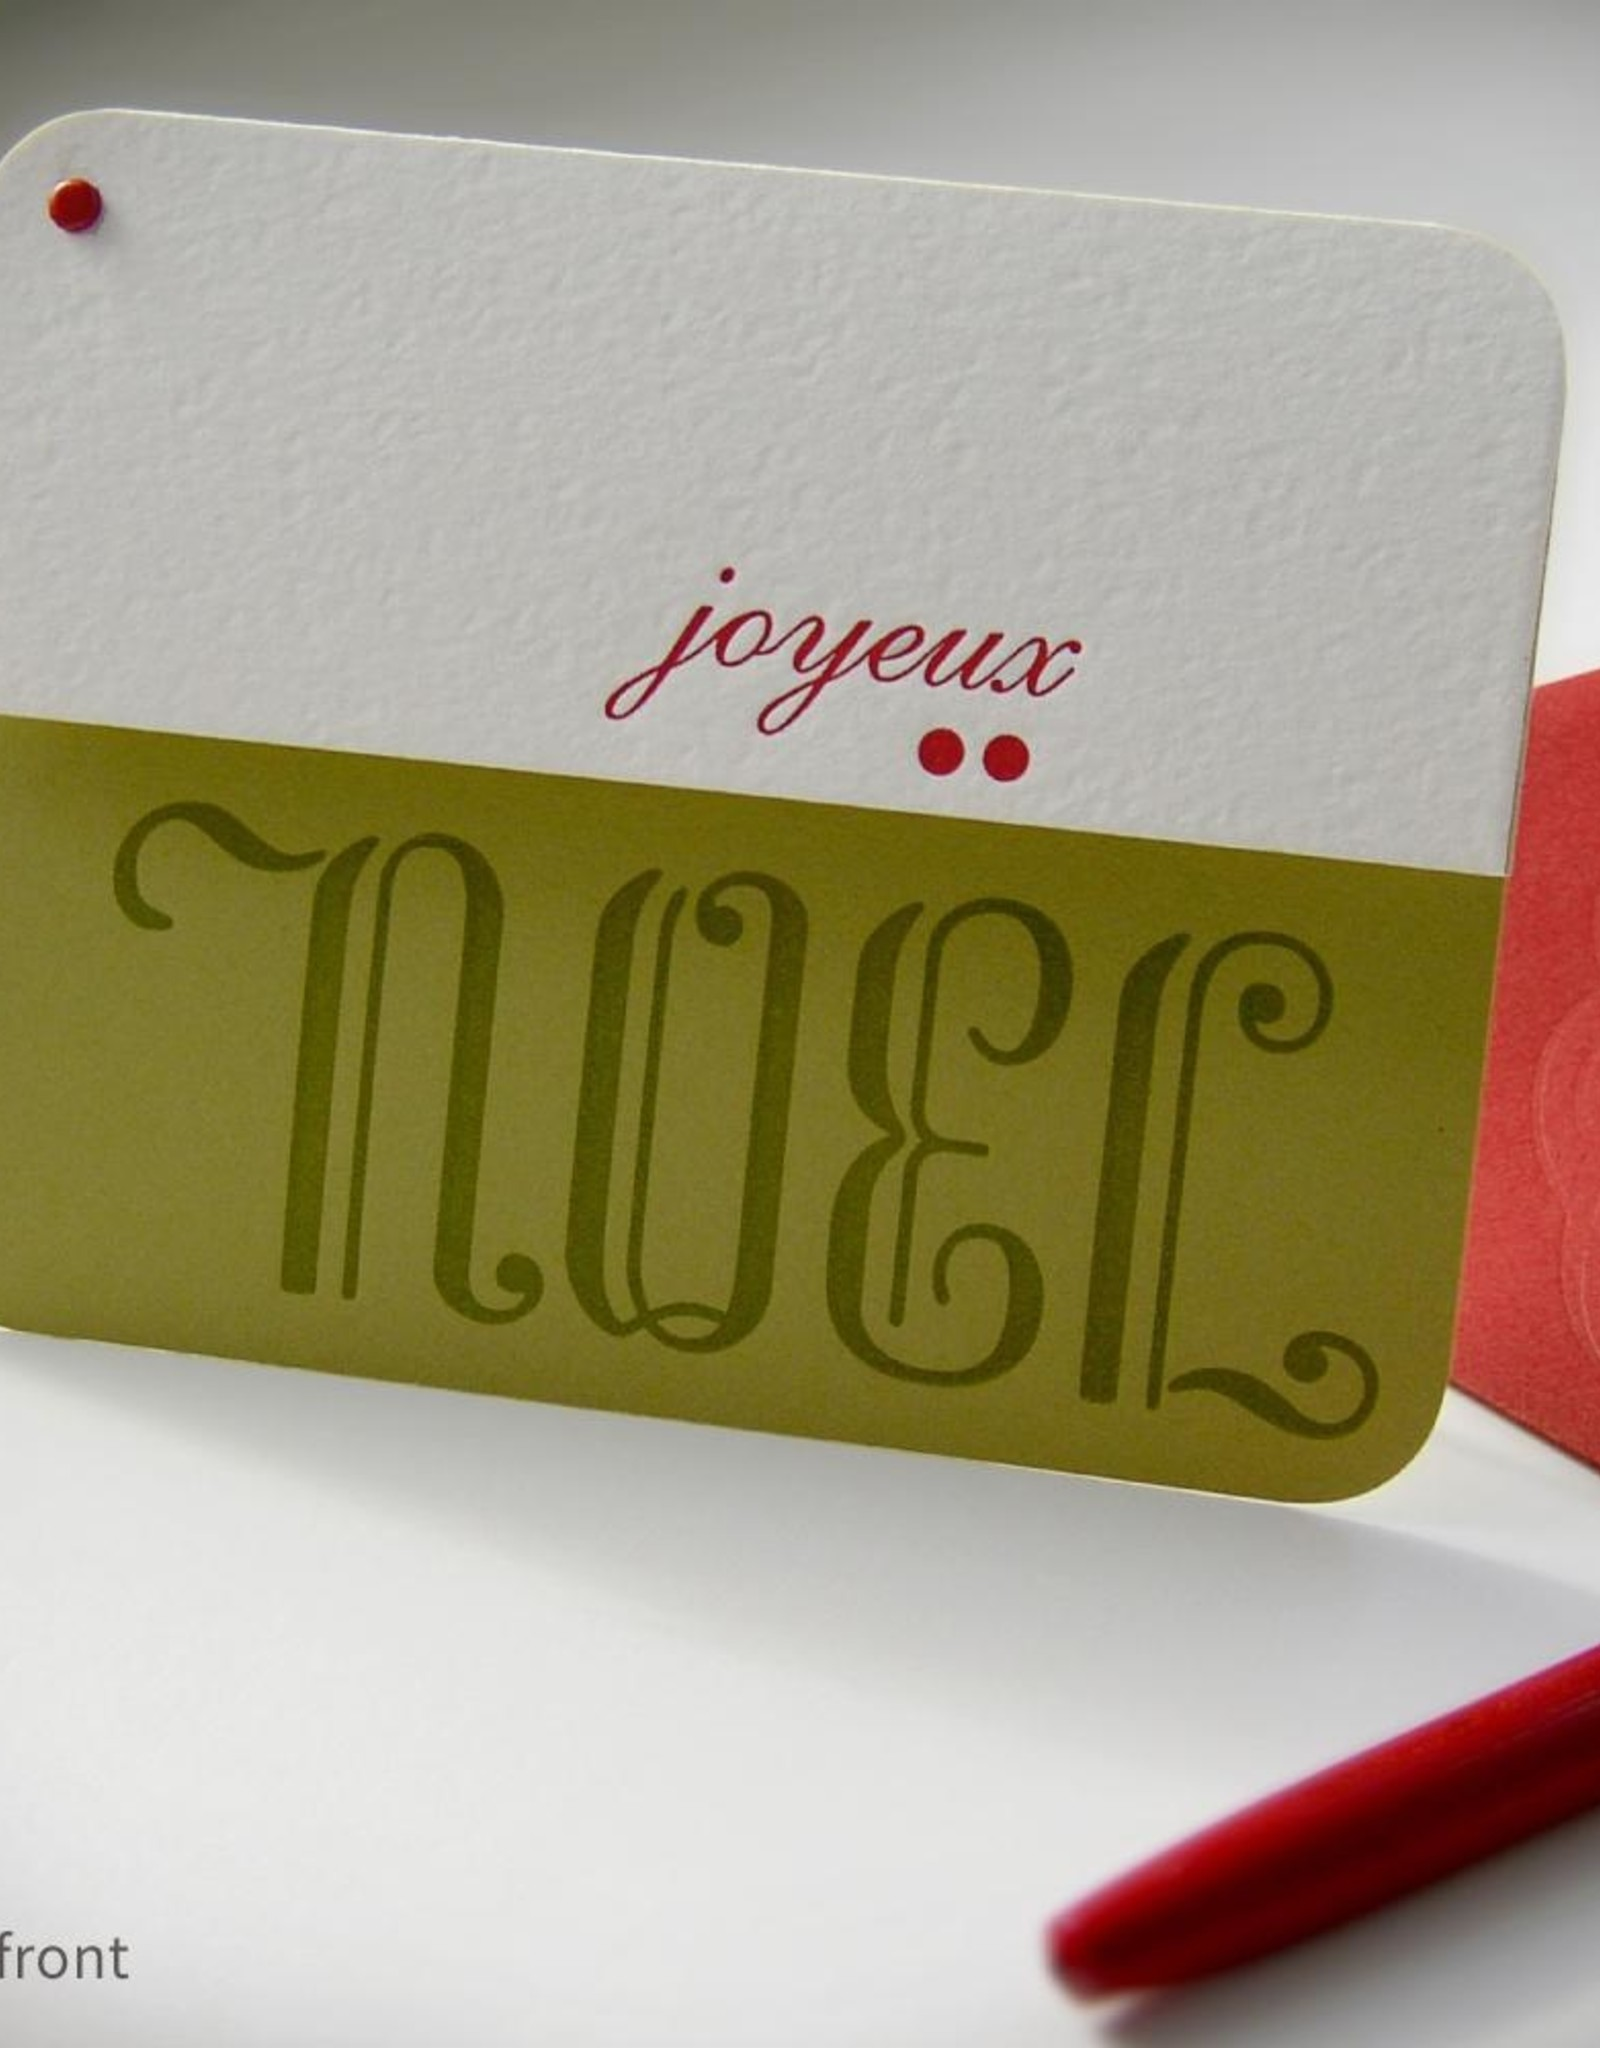 Inkello Assorted Holiday Cards by Inkello